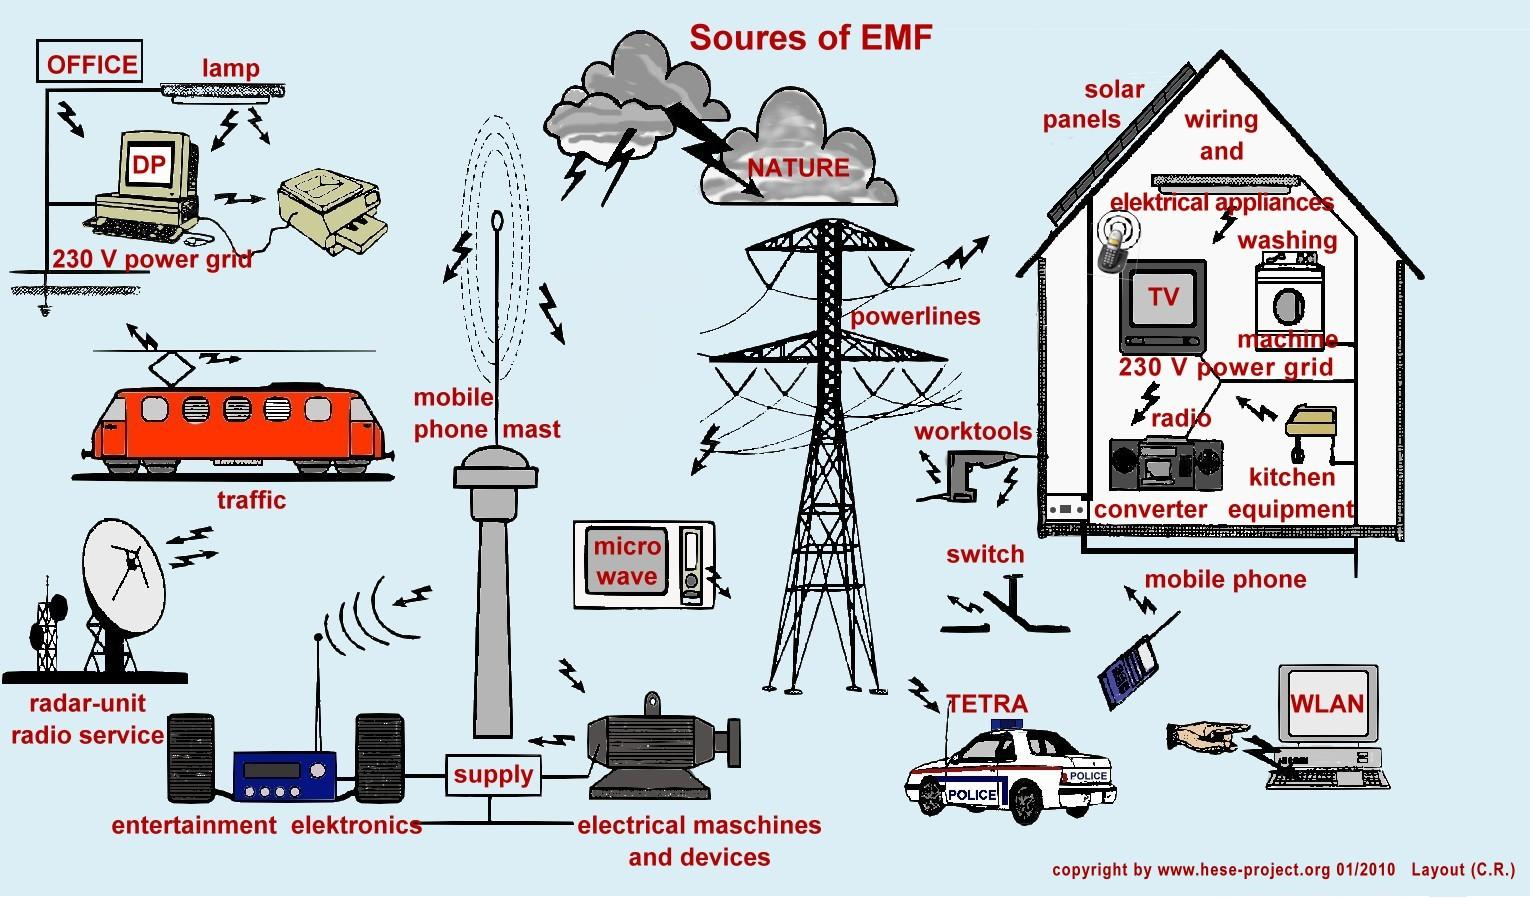 Canadians are calling on building professionals to reduce their EMF ...